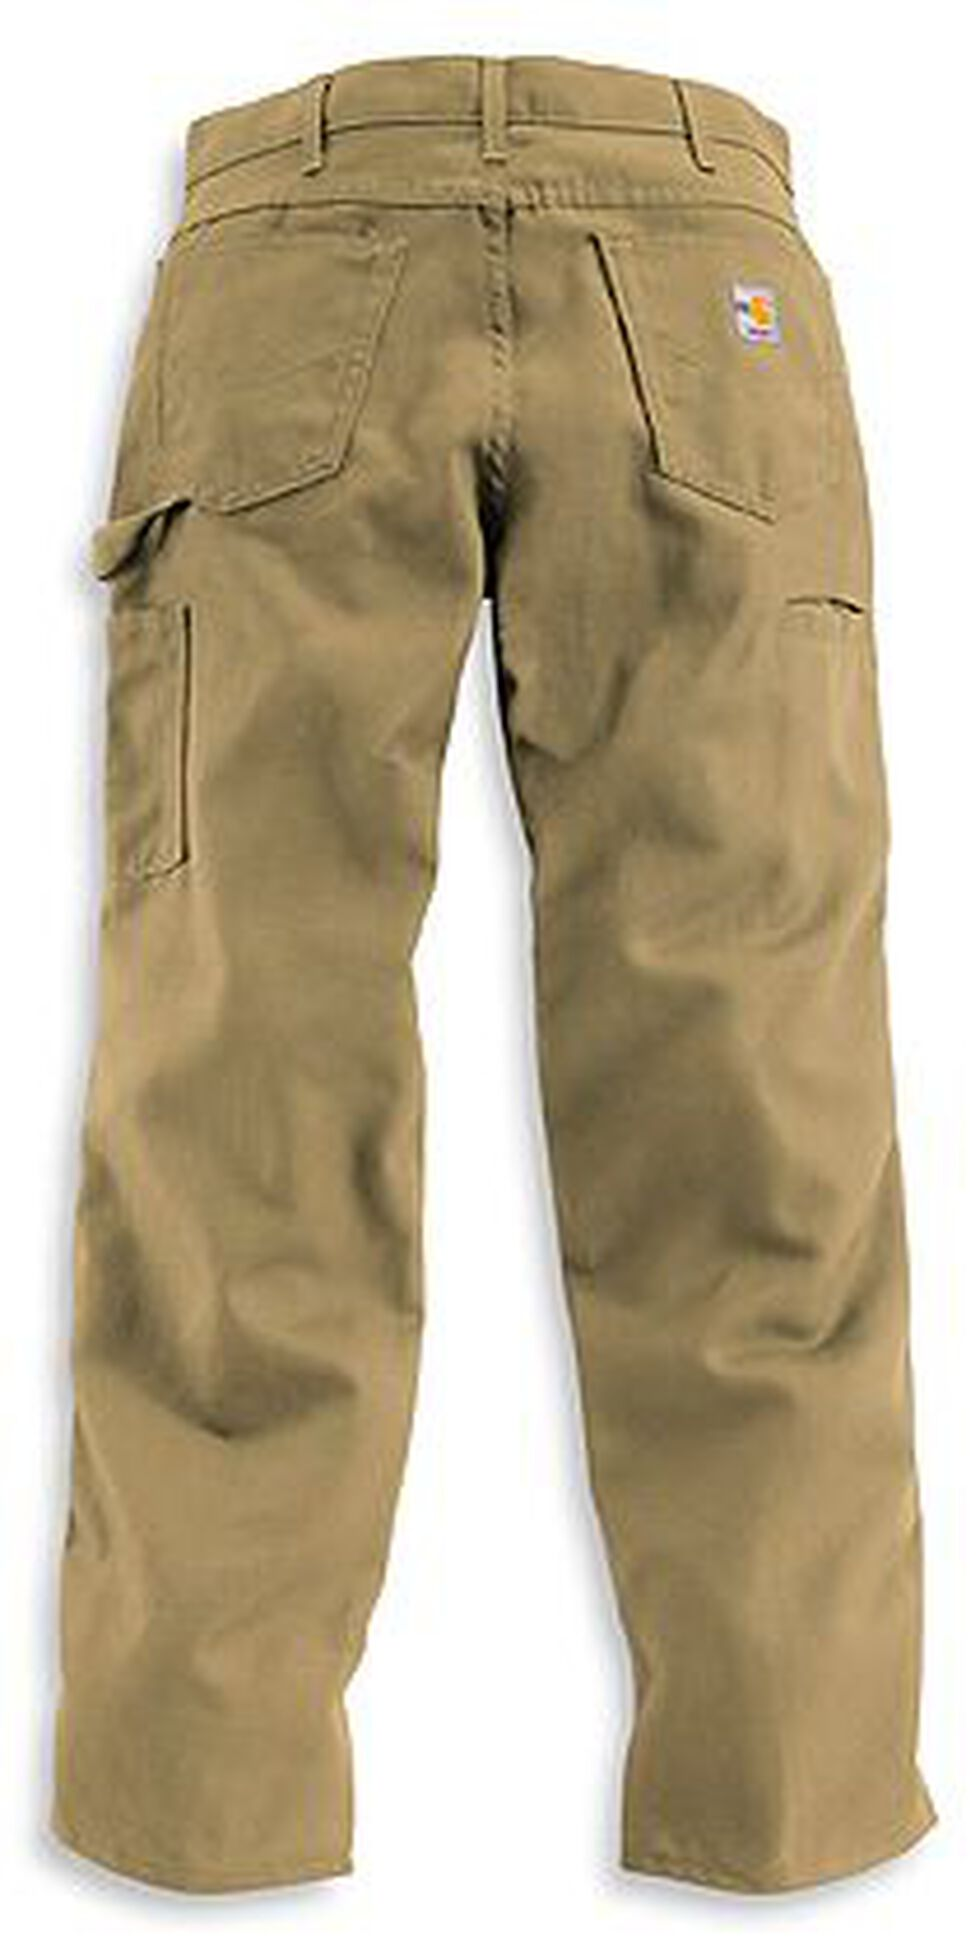 Carhartt Flame Resistant Canvas Work Pants - Big & Tall, Khaki, hi-res